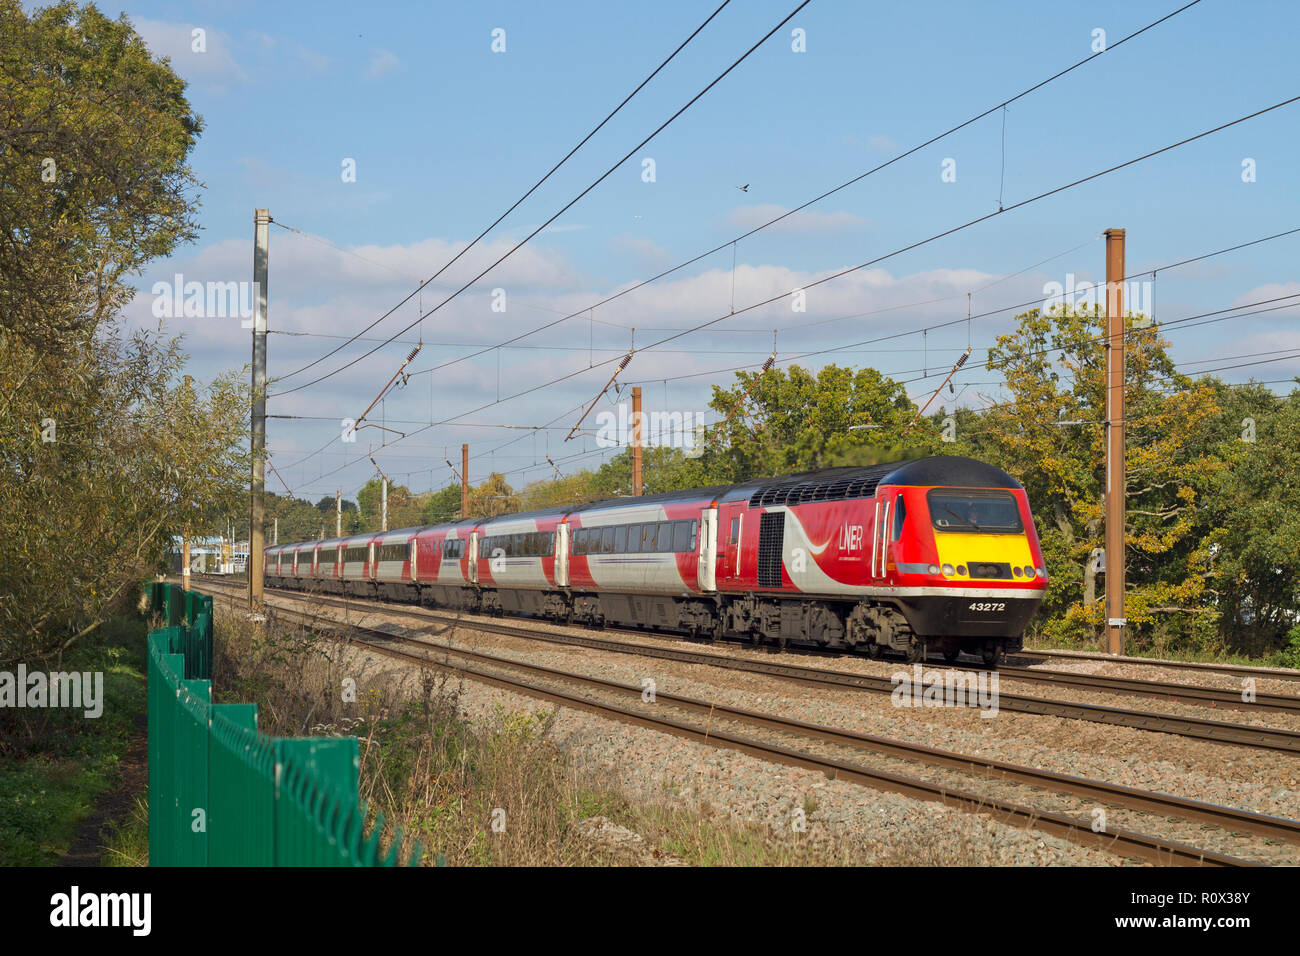 An LNER HST with power cars 43272 and 43306 heads south along the East Coast Mainline at Brookmans Park. - Stock Image